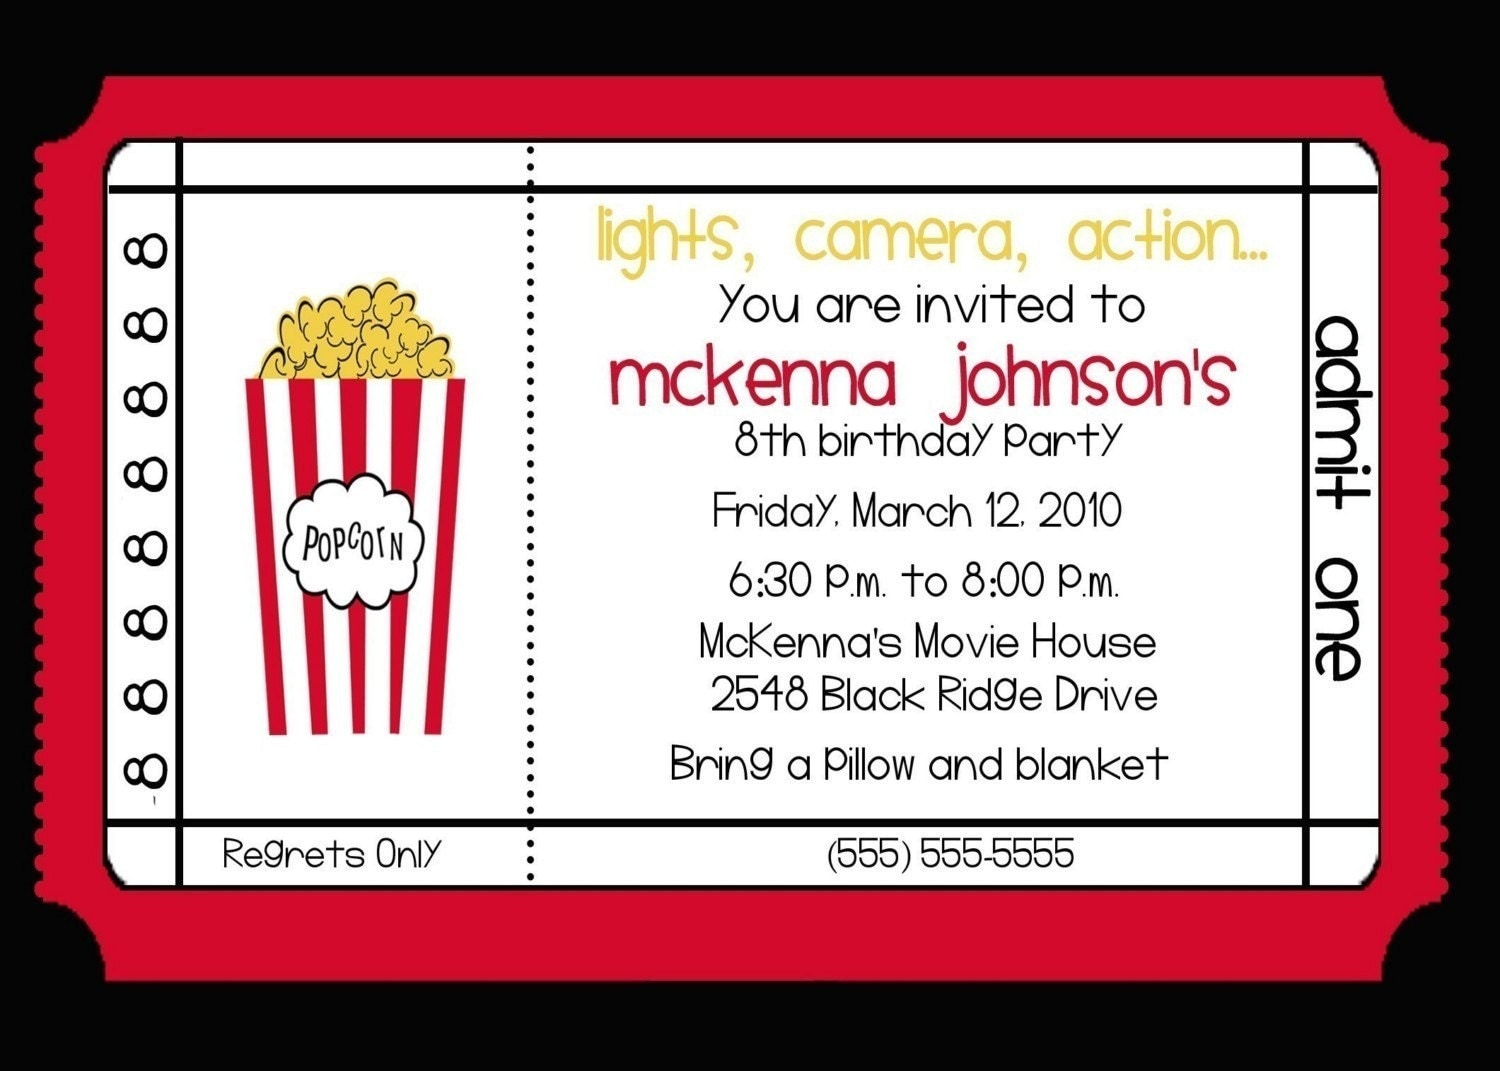 movie theater birthday party invitation by nattysuedesigns1. Black Bedroom Furniture Sets. Home Design Ideas